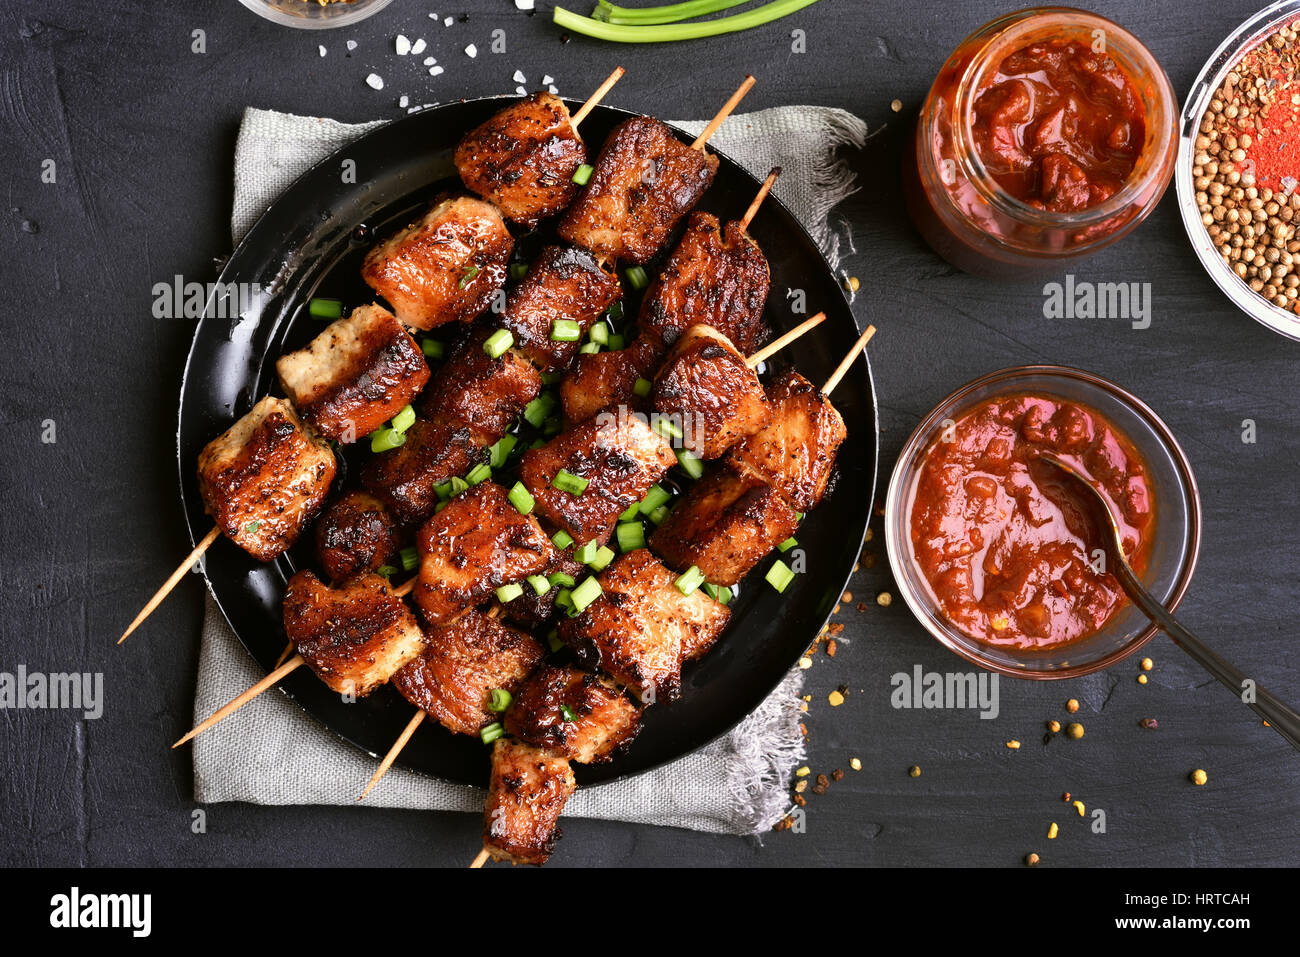 Barbecued pork kebabs and tomato sauce, top view - Stock Image